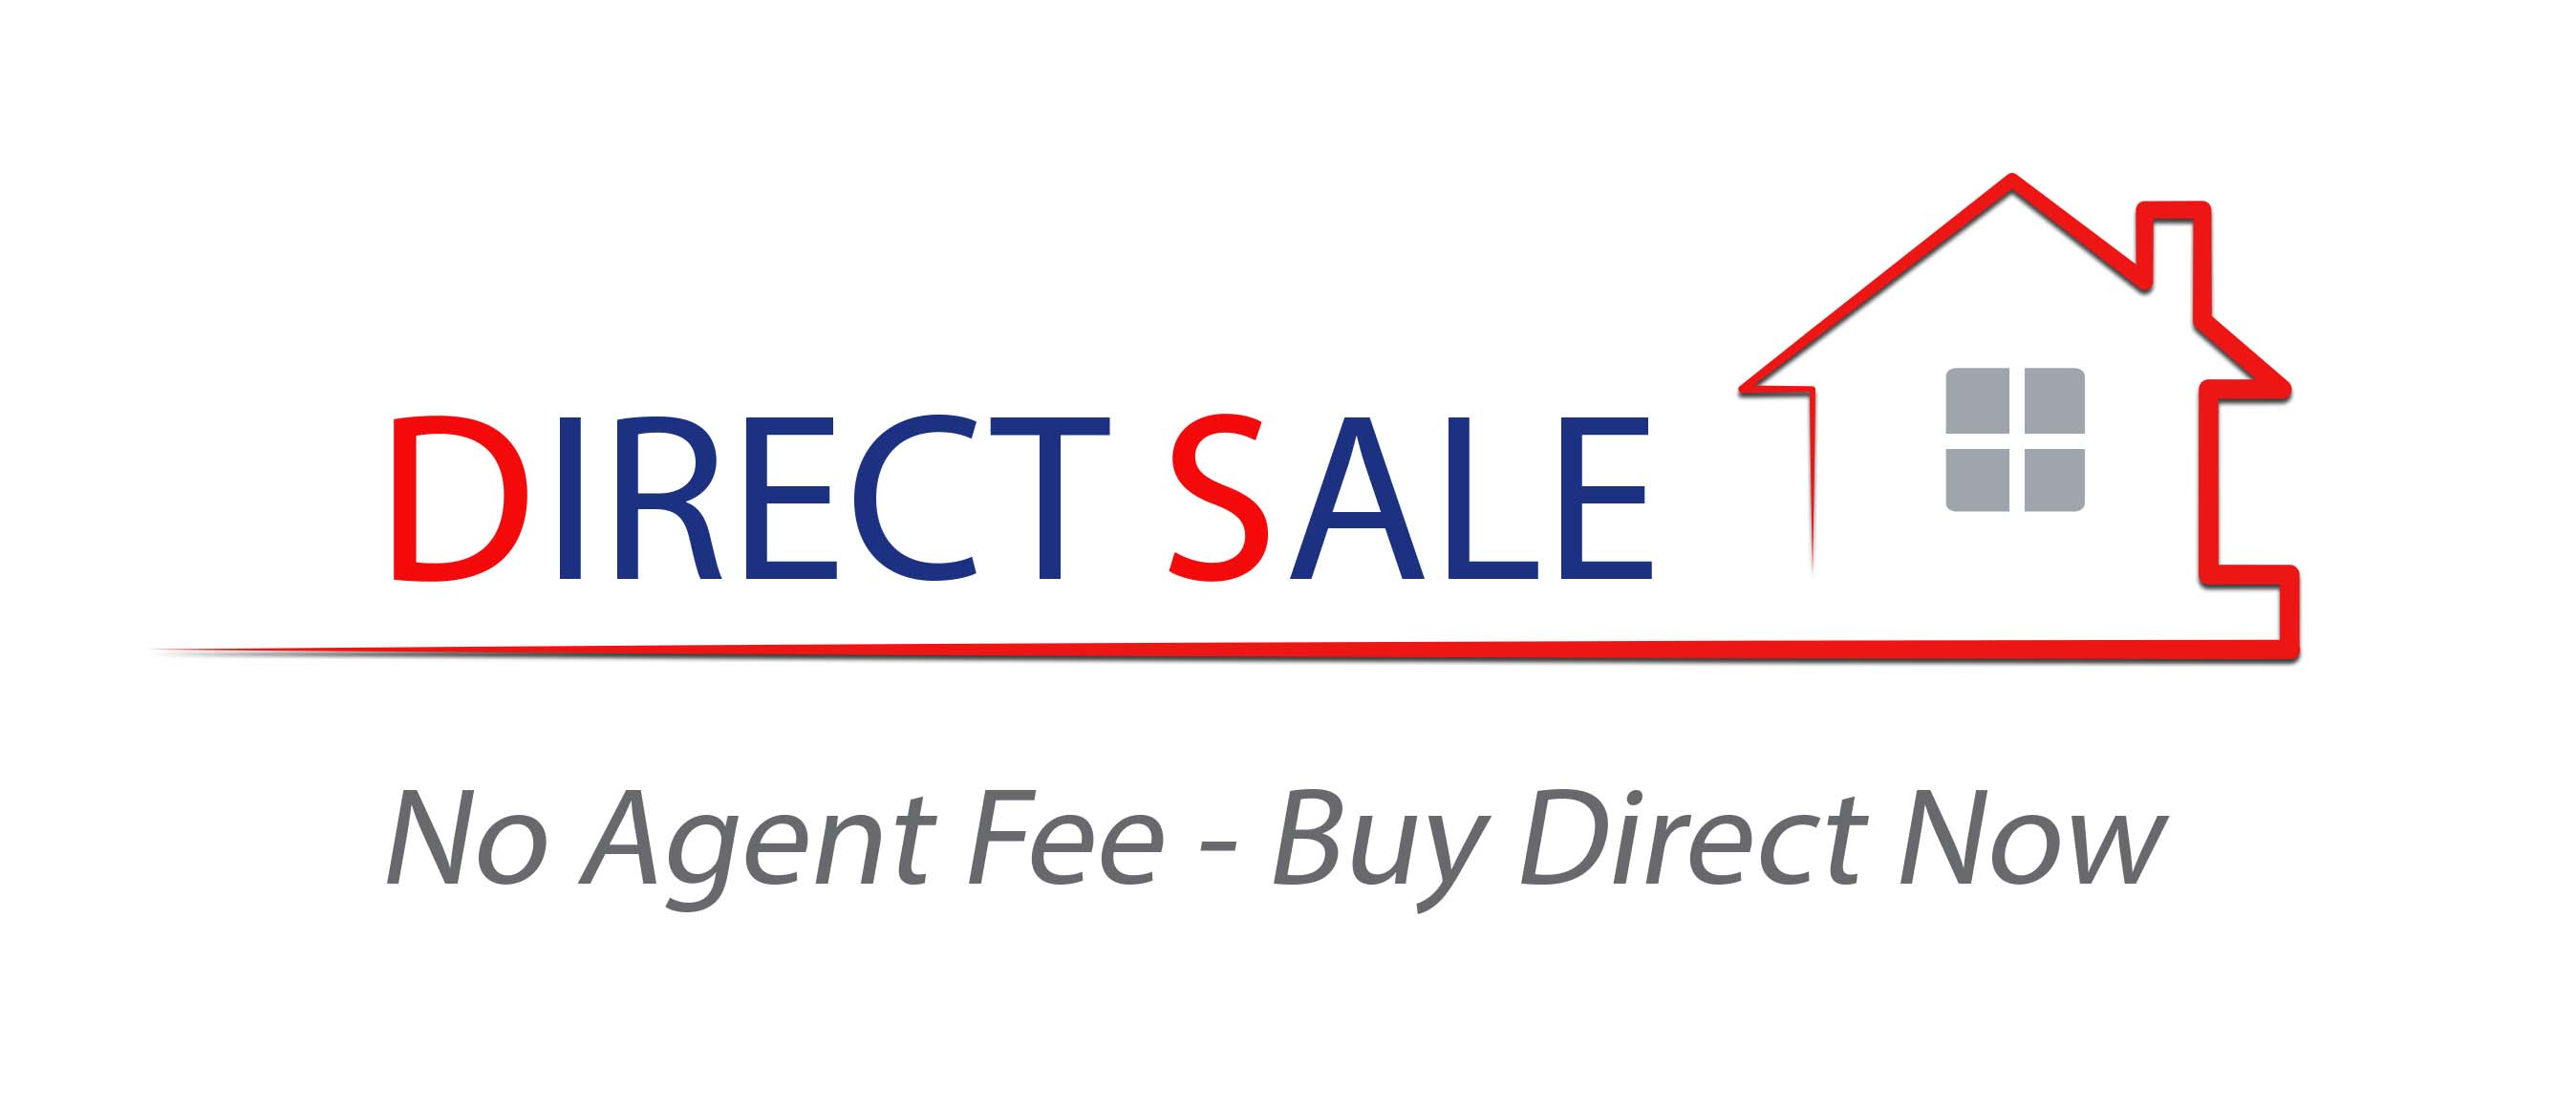 Direct Sale Contact